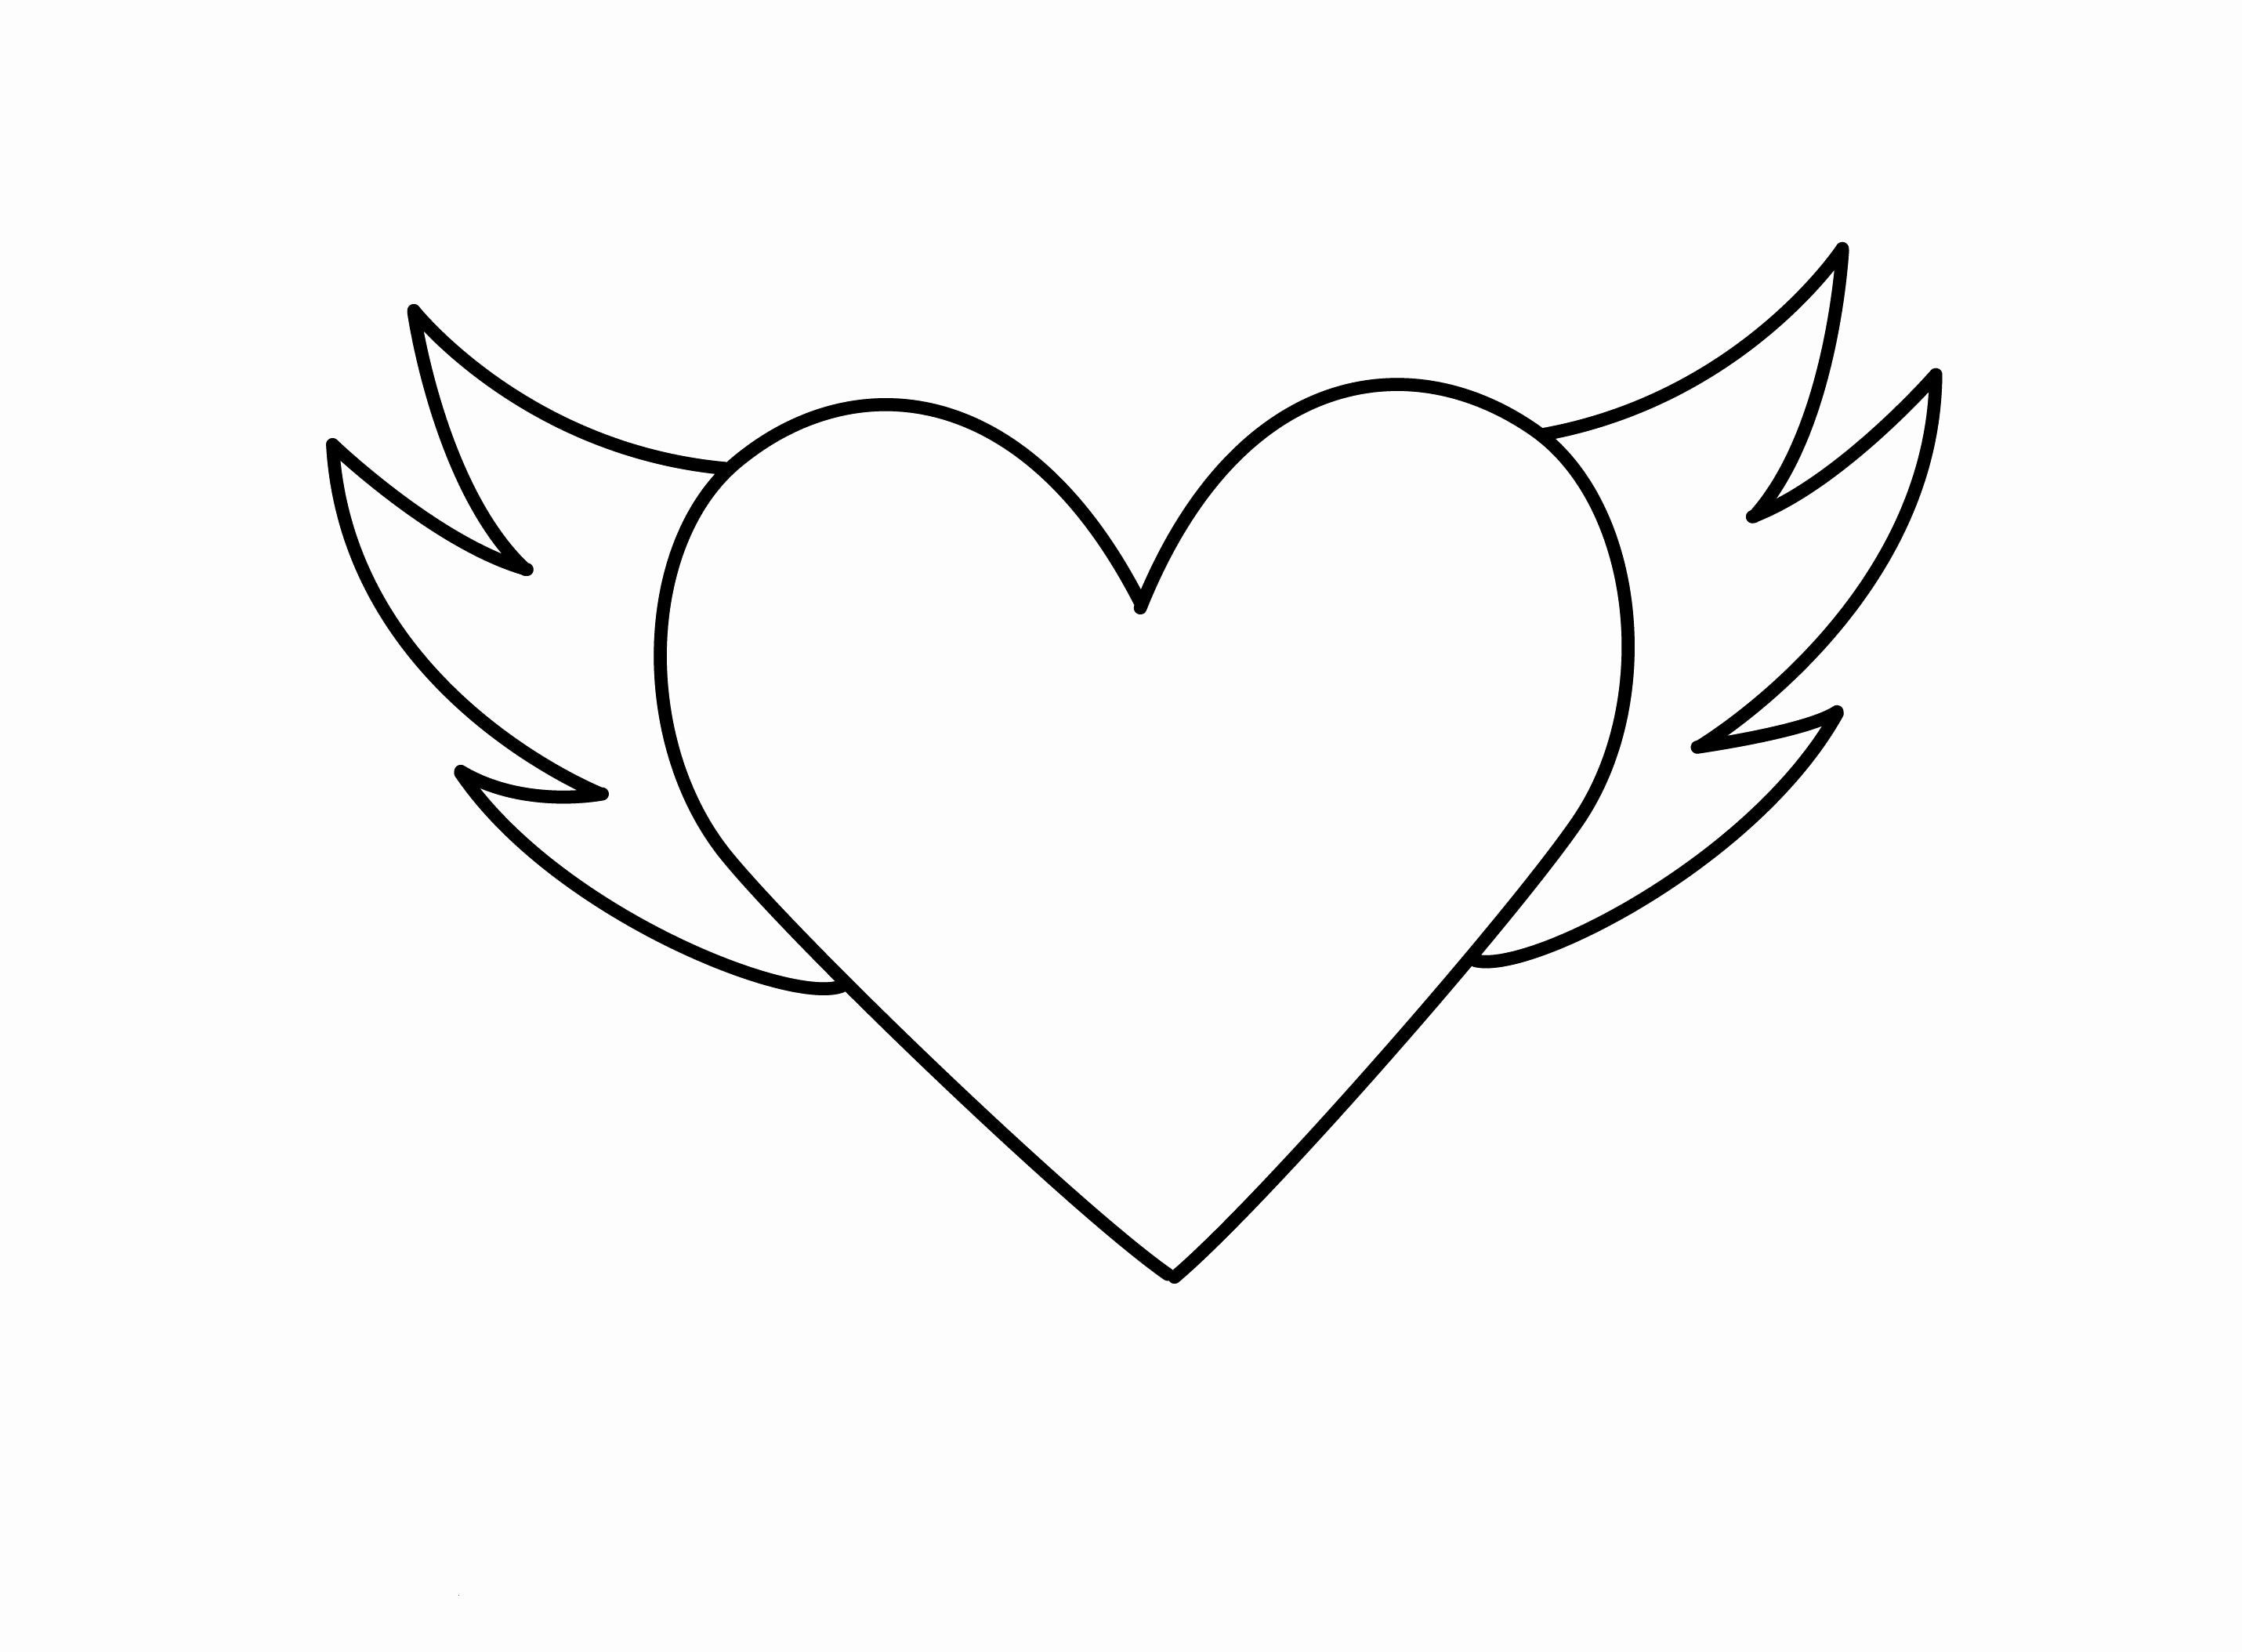 Printable Heart Coloring Pages Fresh Heart Coloring Page For Girls To Print For Free Heart Coloring Pages Shape Coloring Pages Heart Drawing